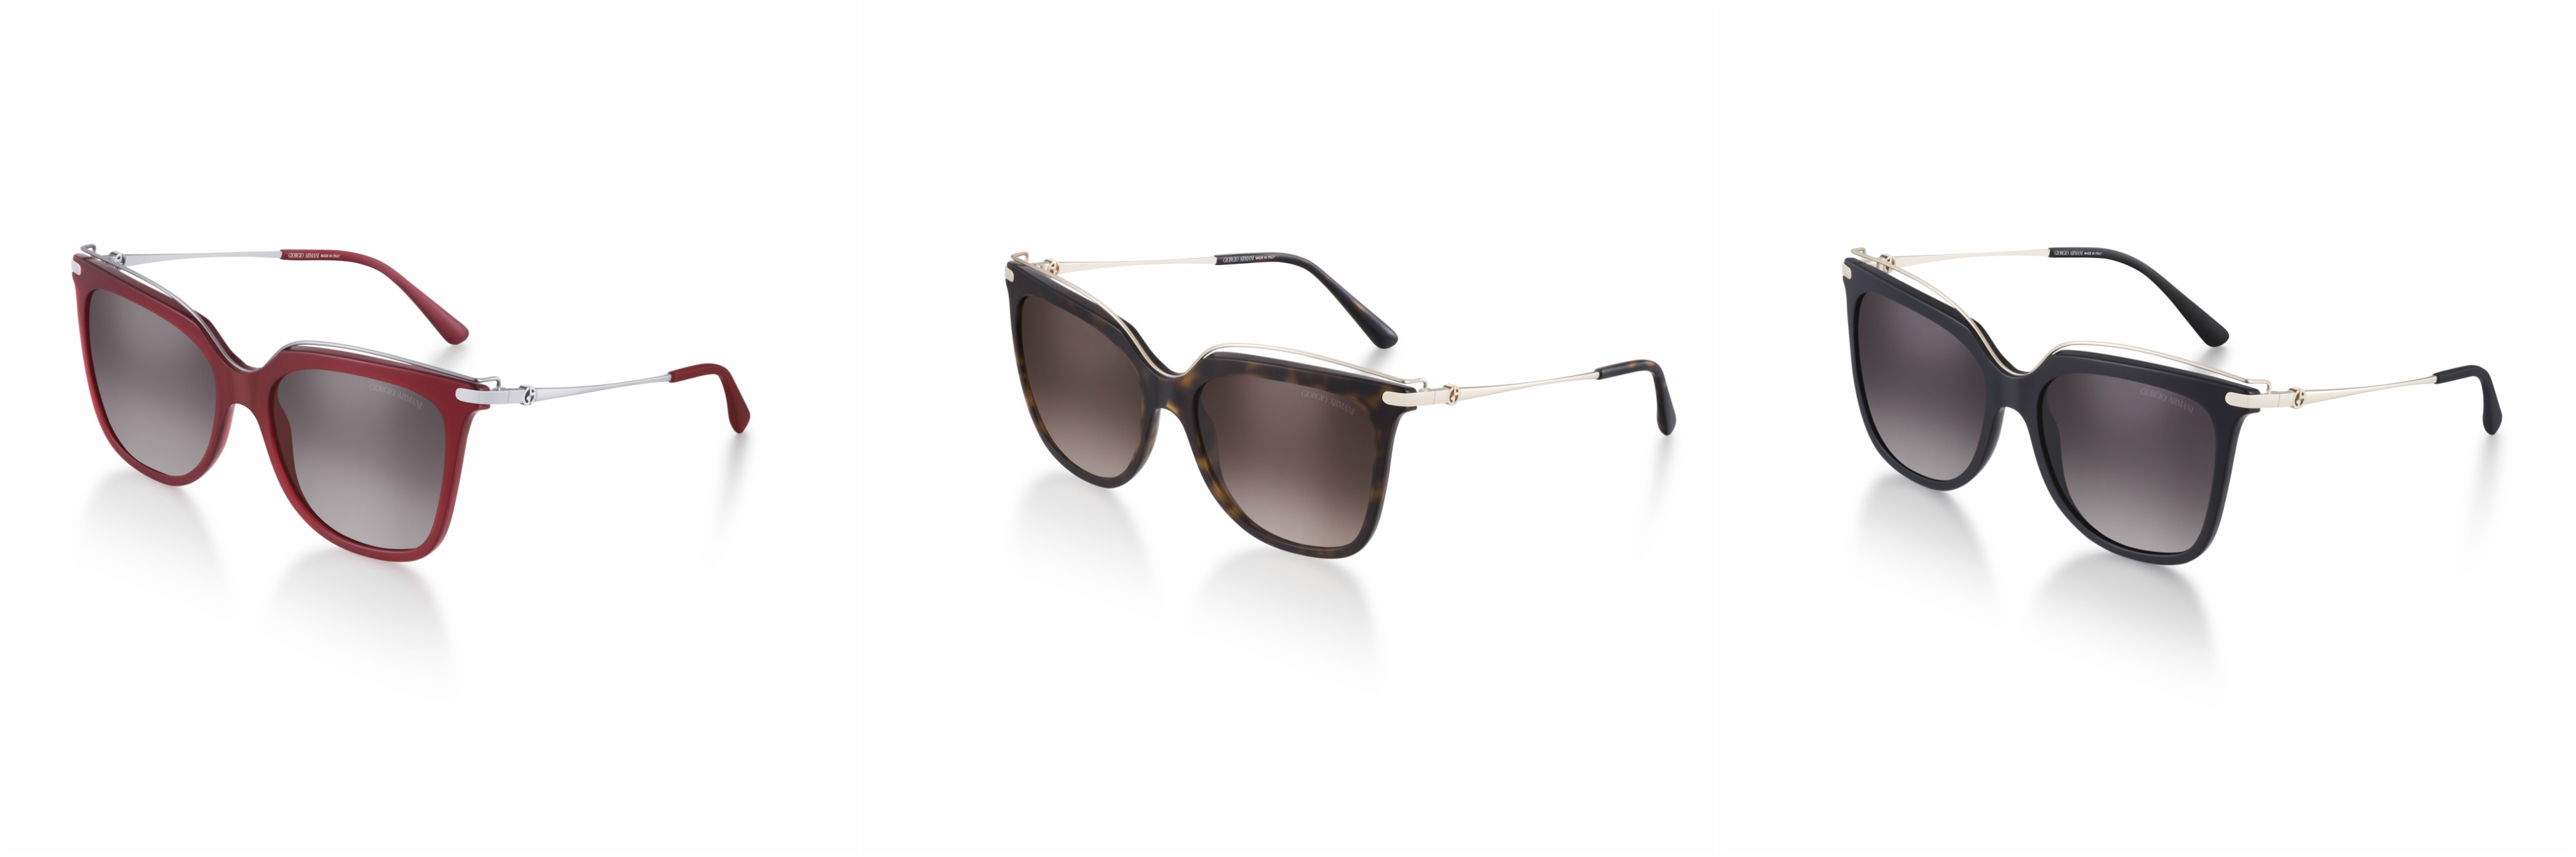 Giorgio Armani Introduces Luxurious Simplicity to Eyewear | Identity ...